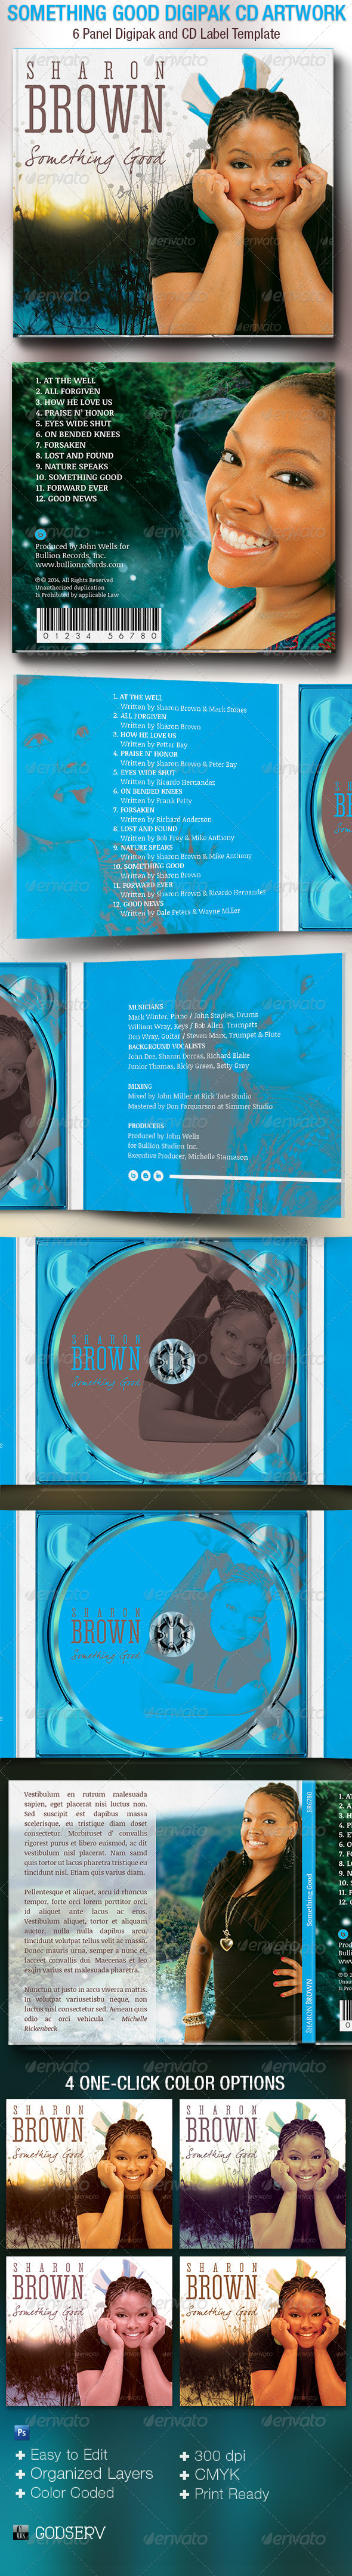 Something Good 6 Panel Digipak CD Artwork Template - CD & DVD Artwork Print Templates